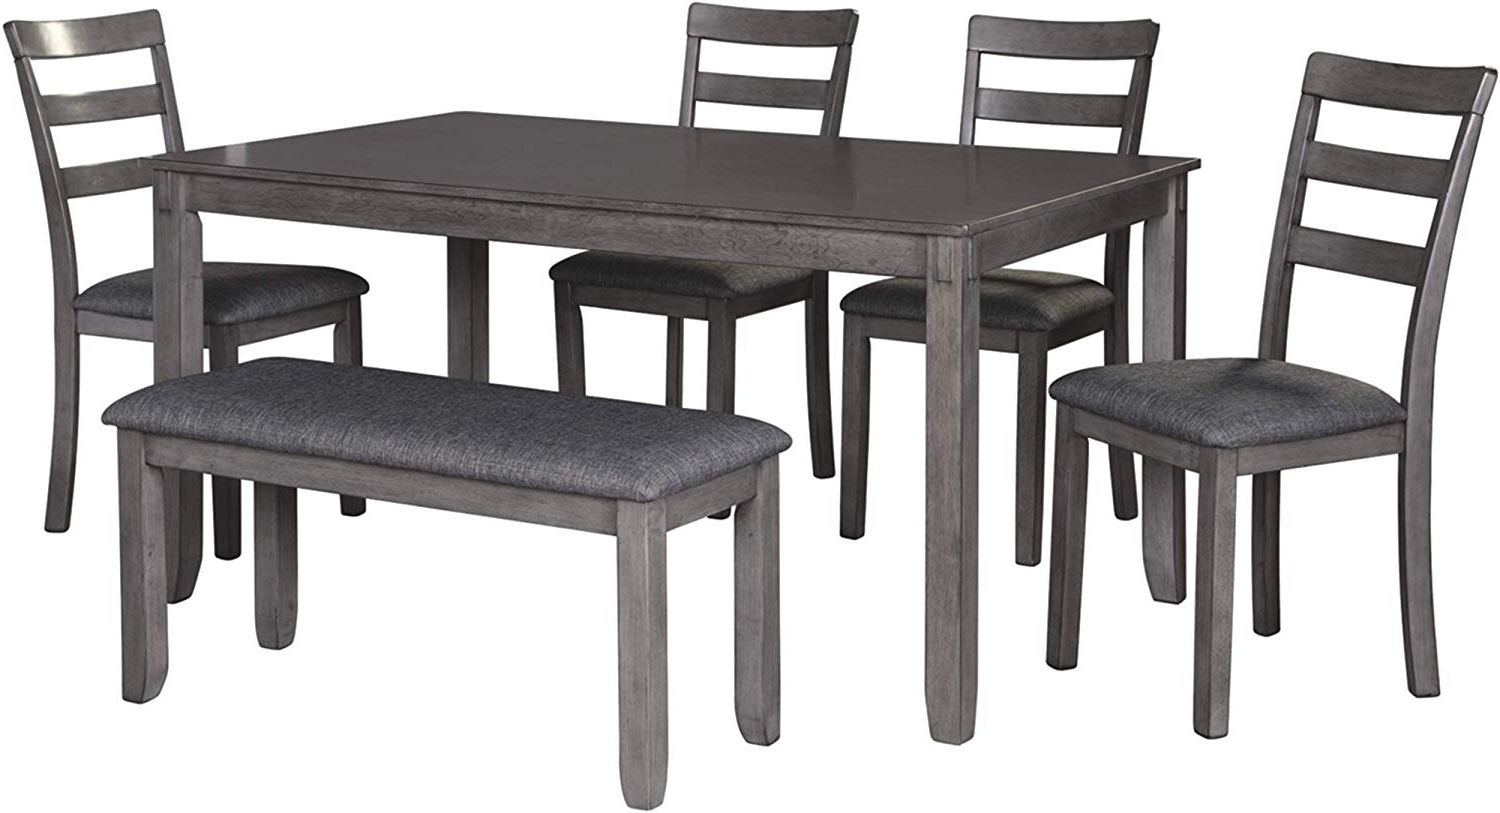 Transitional 6 Seating Casual Dining Tables Inside 2019 Signature Designashley Bridson Dining Table, Gray (View 4 of 25)